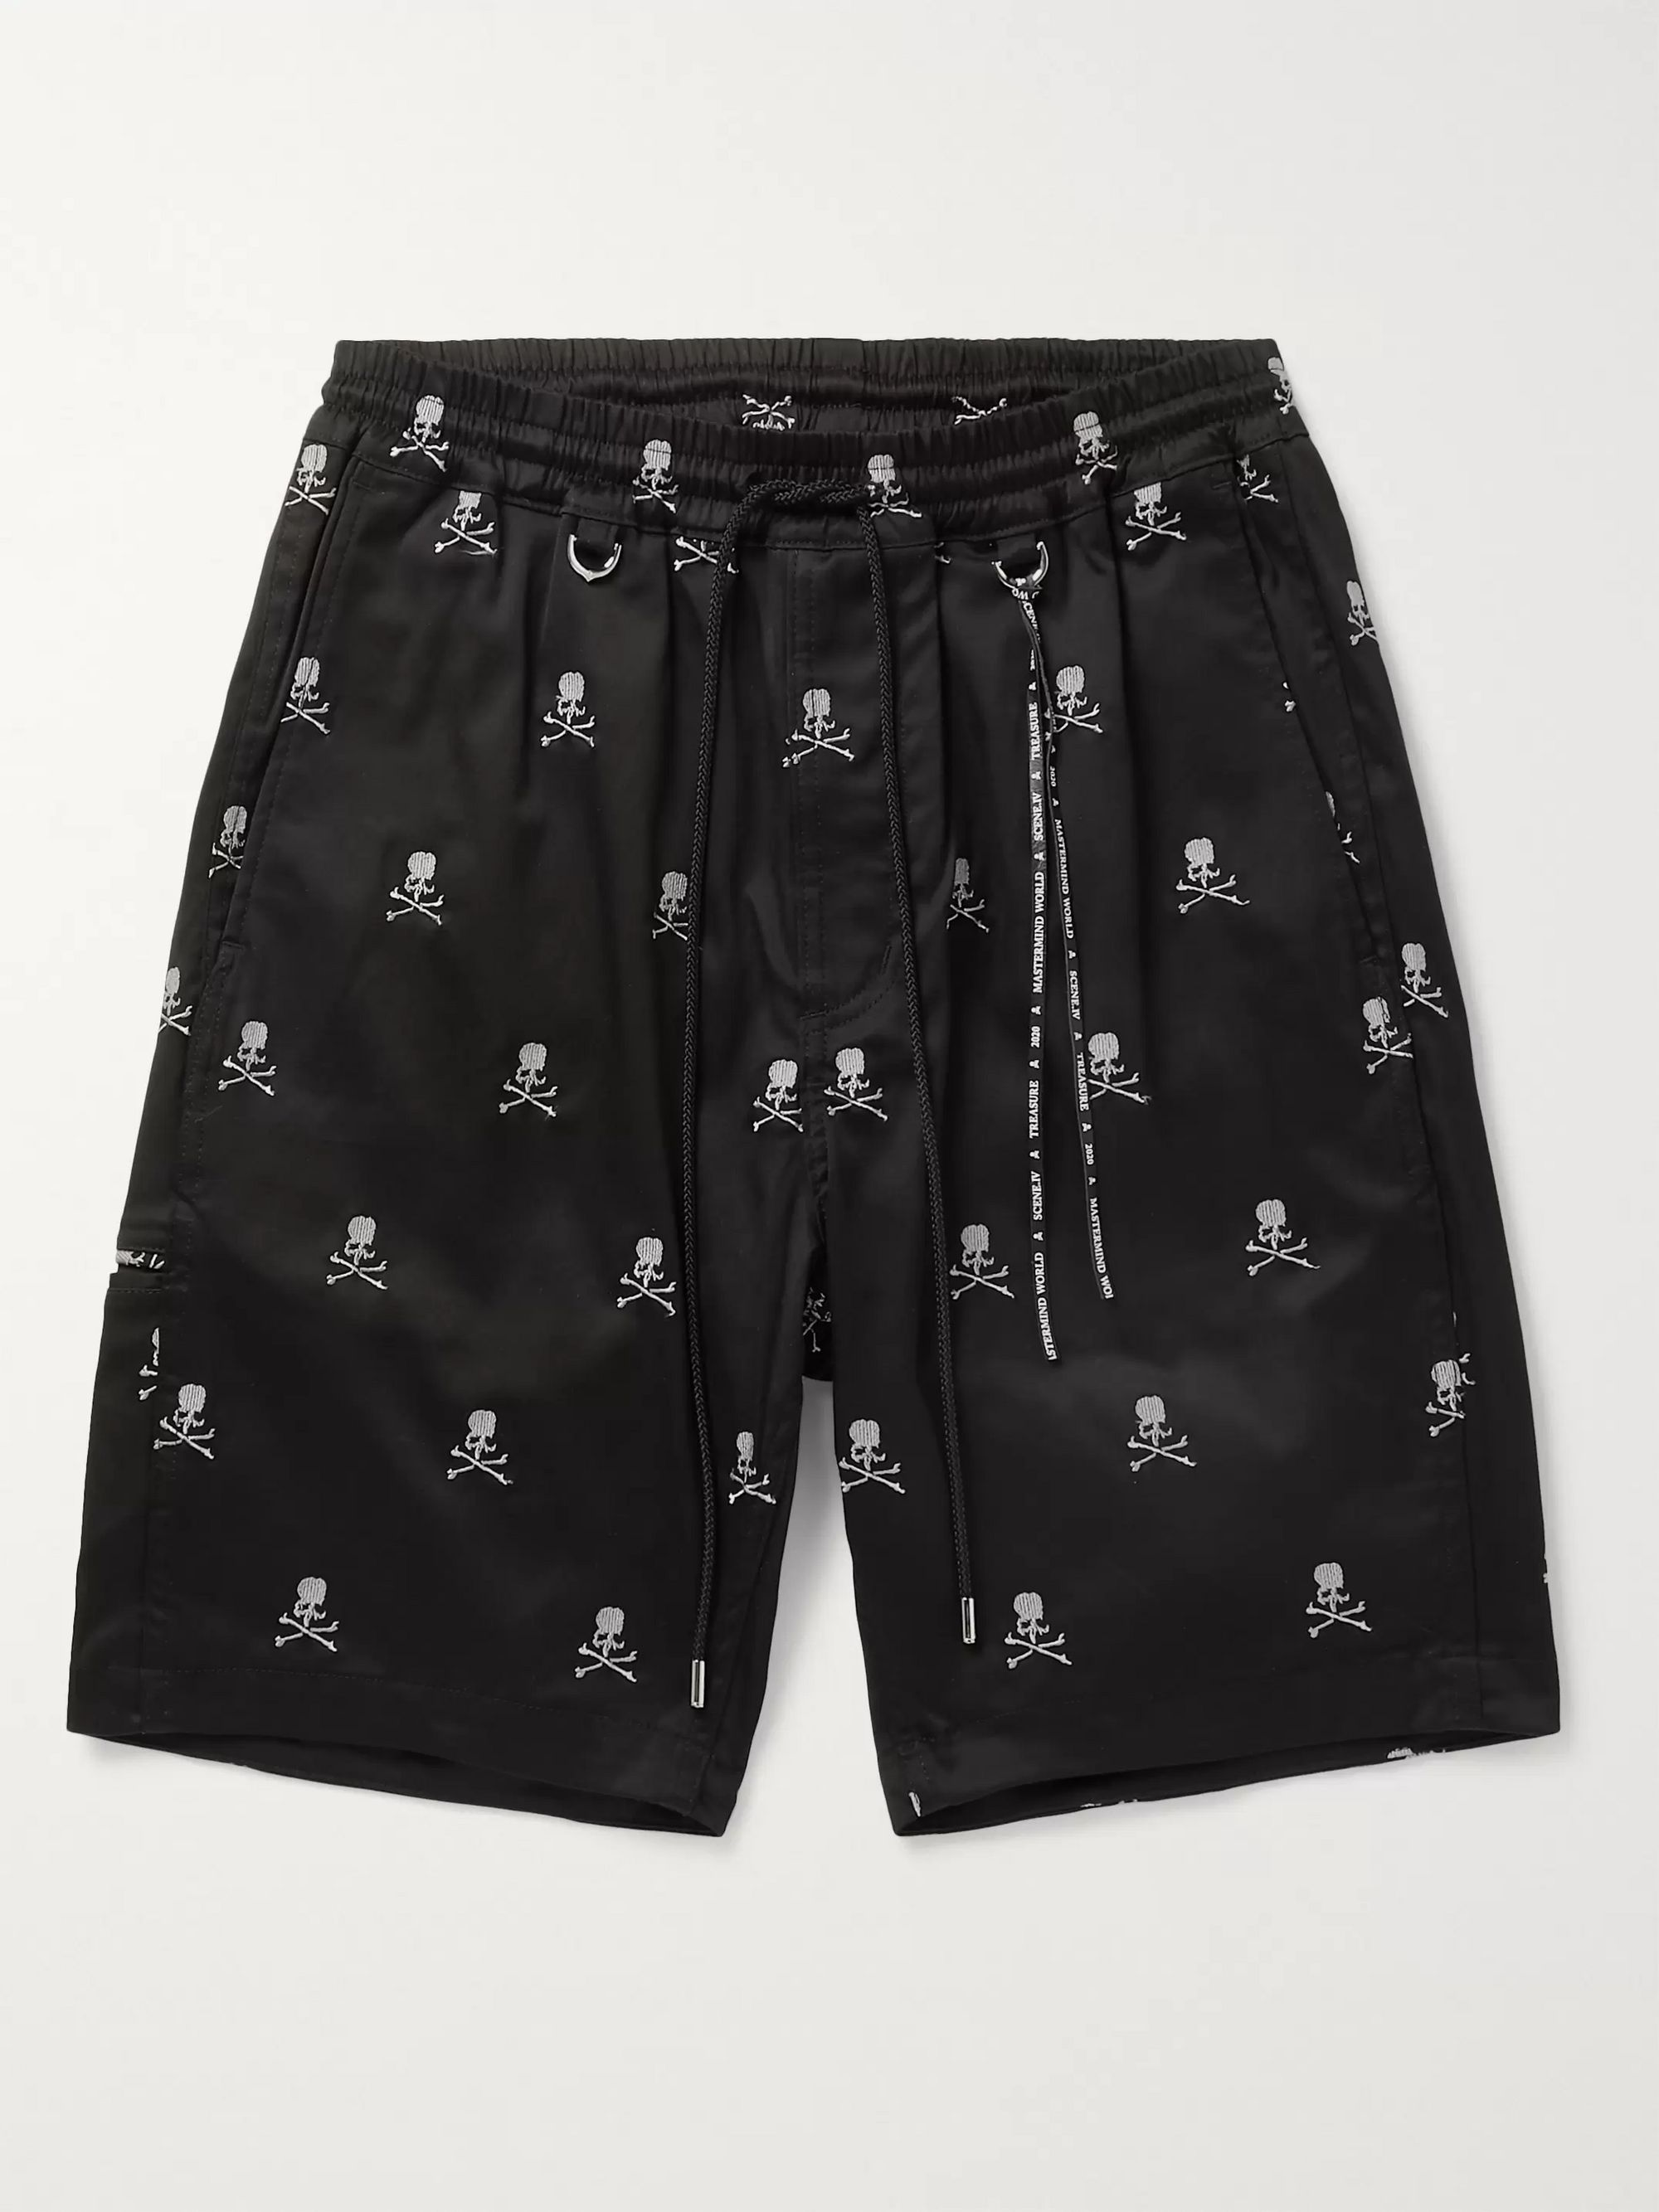 MASTERMIND WORLD Pleated Logo-Embroidered Cotton-Blend Twill Drawstring Shorts